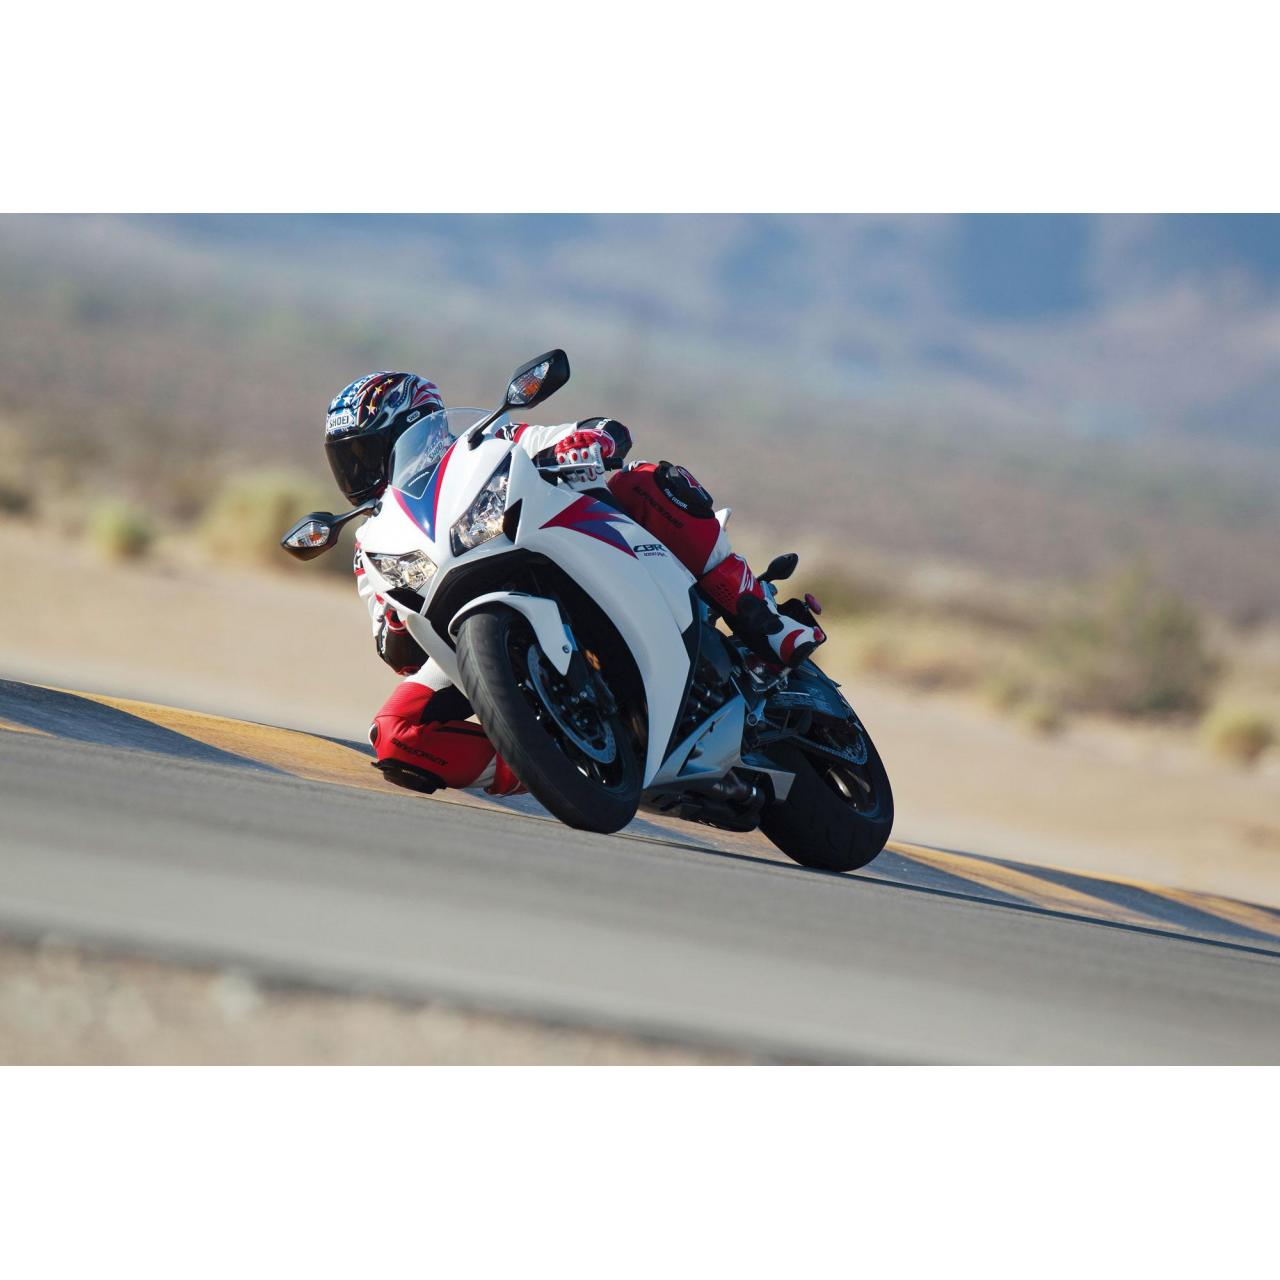 Quality MOTORCYCLES 2012 Honda CBR1000RR for sale